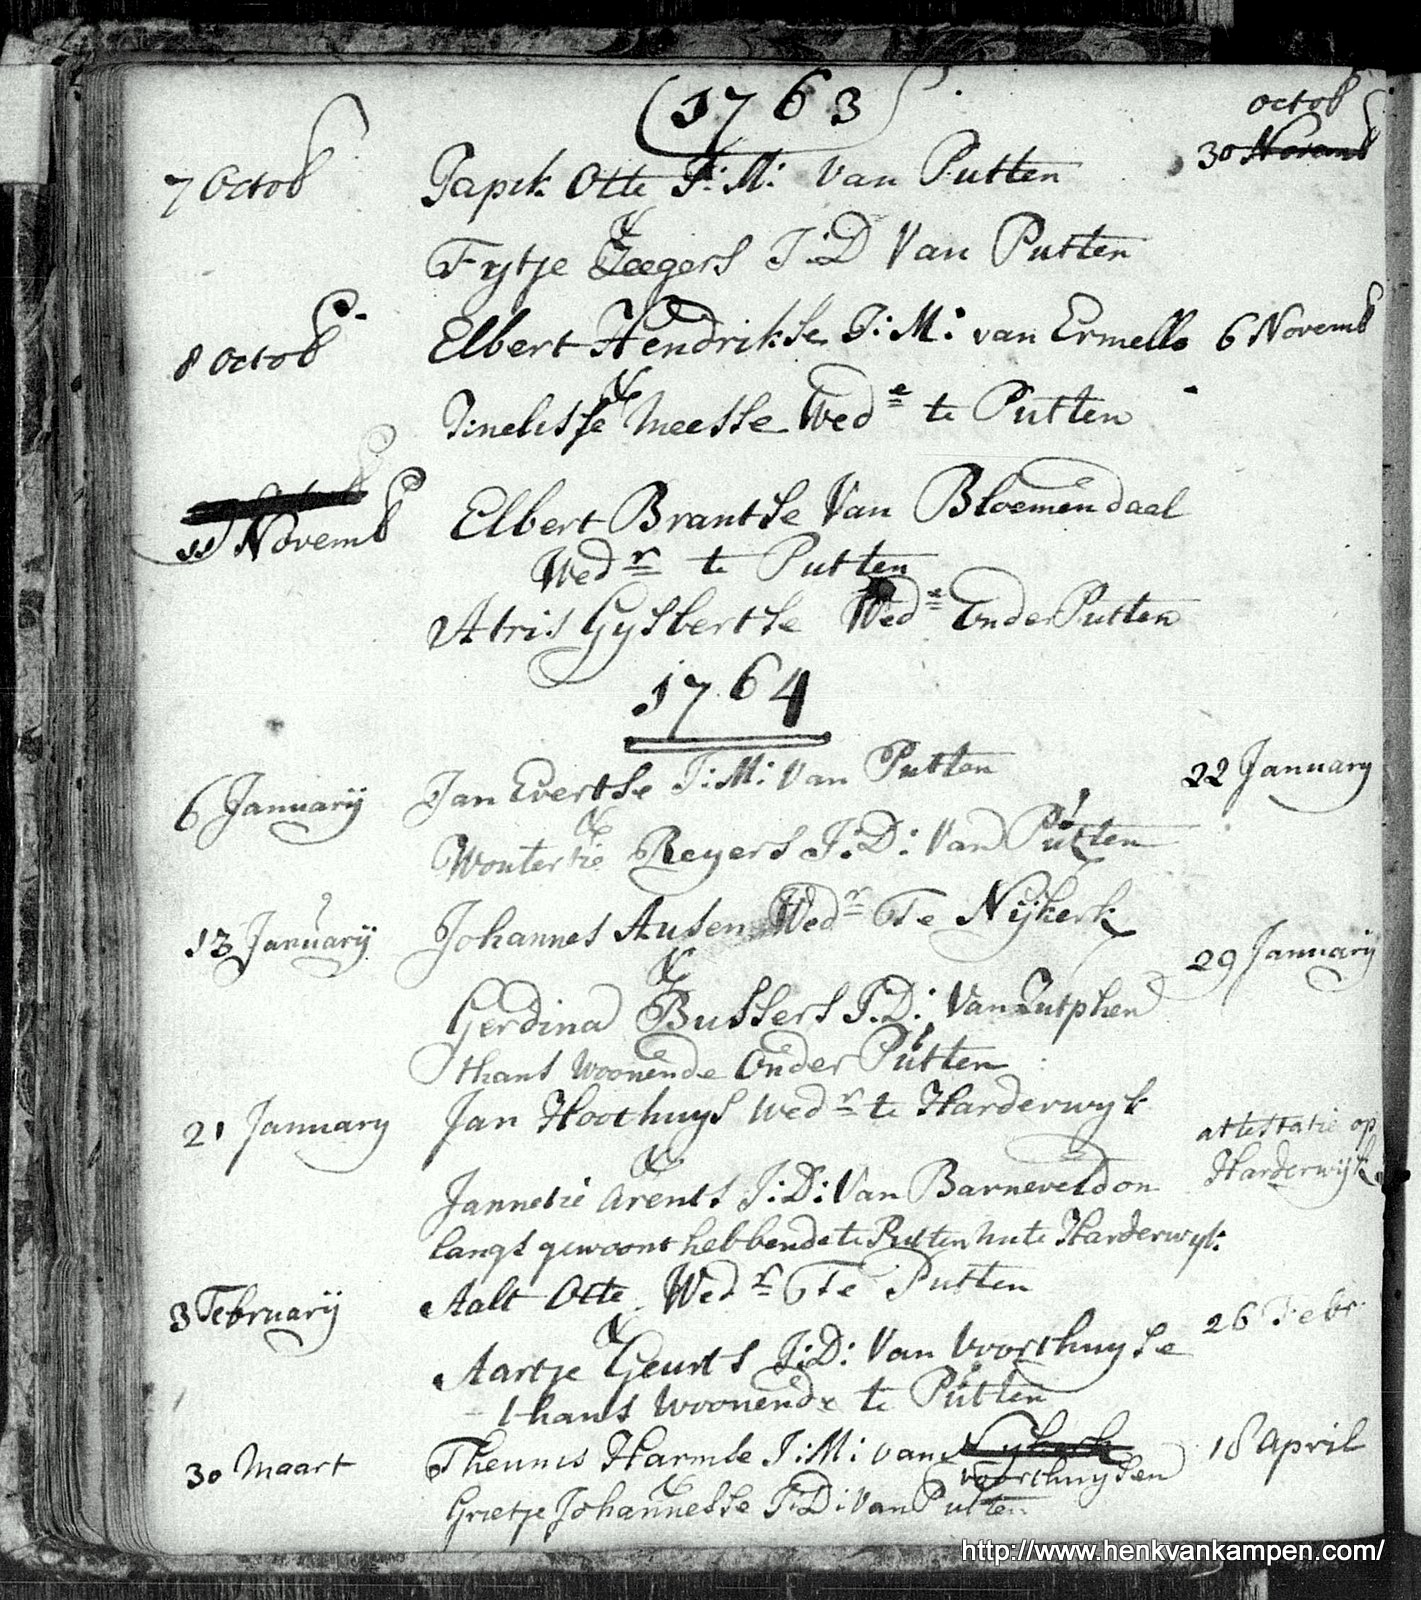 Marriage book of Putten, with the marriage of Teunis Harmse van 't Land and Grietje Johannesse